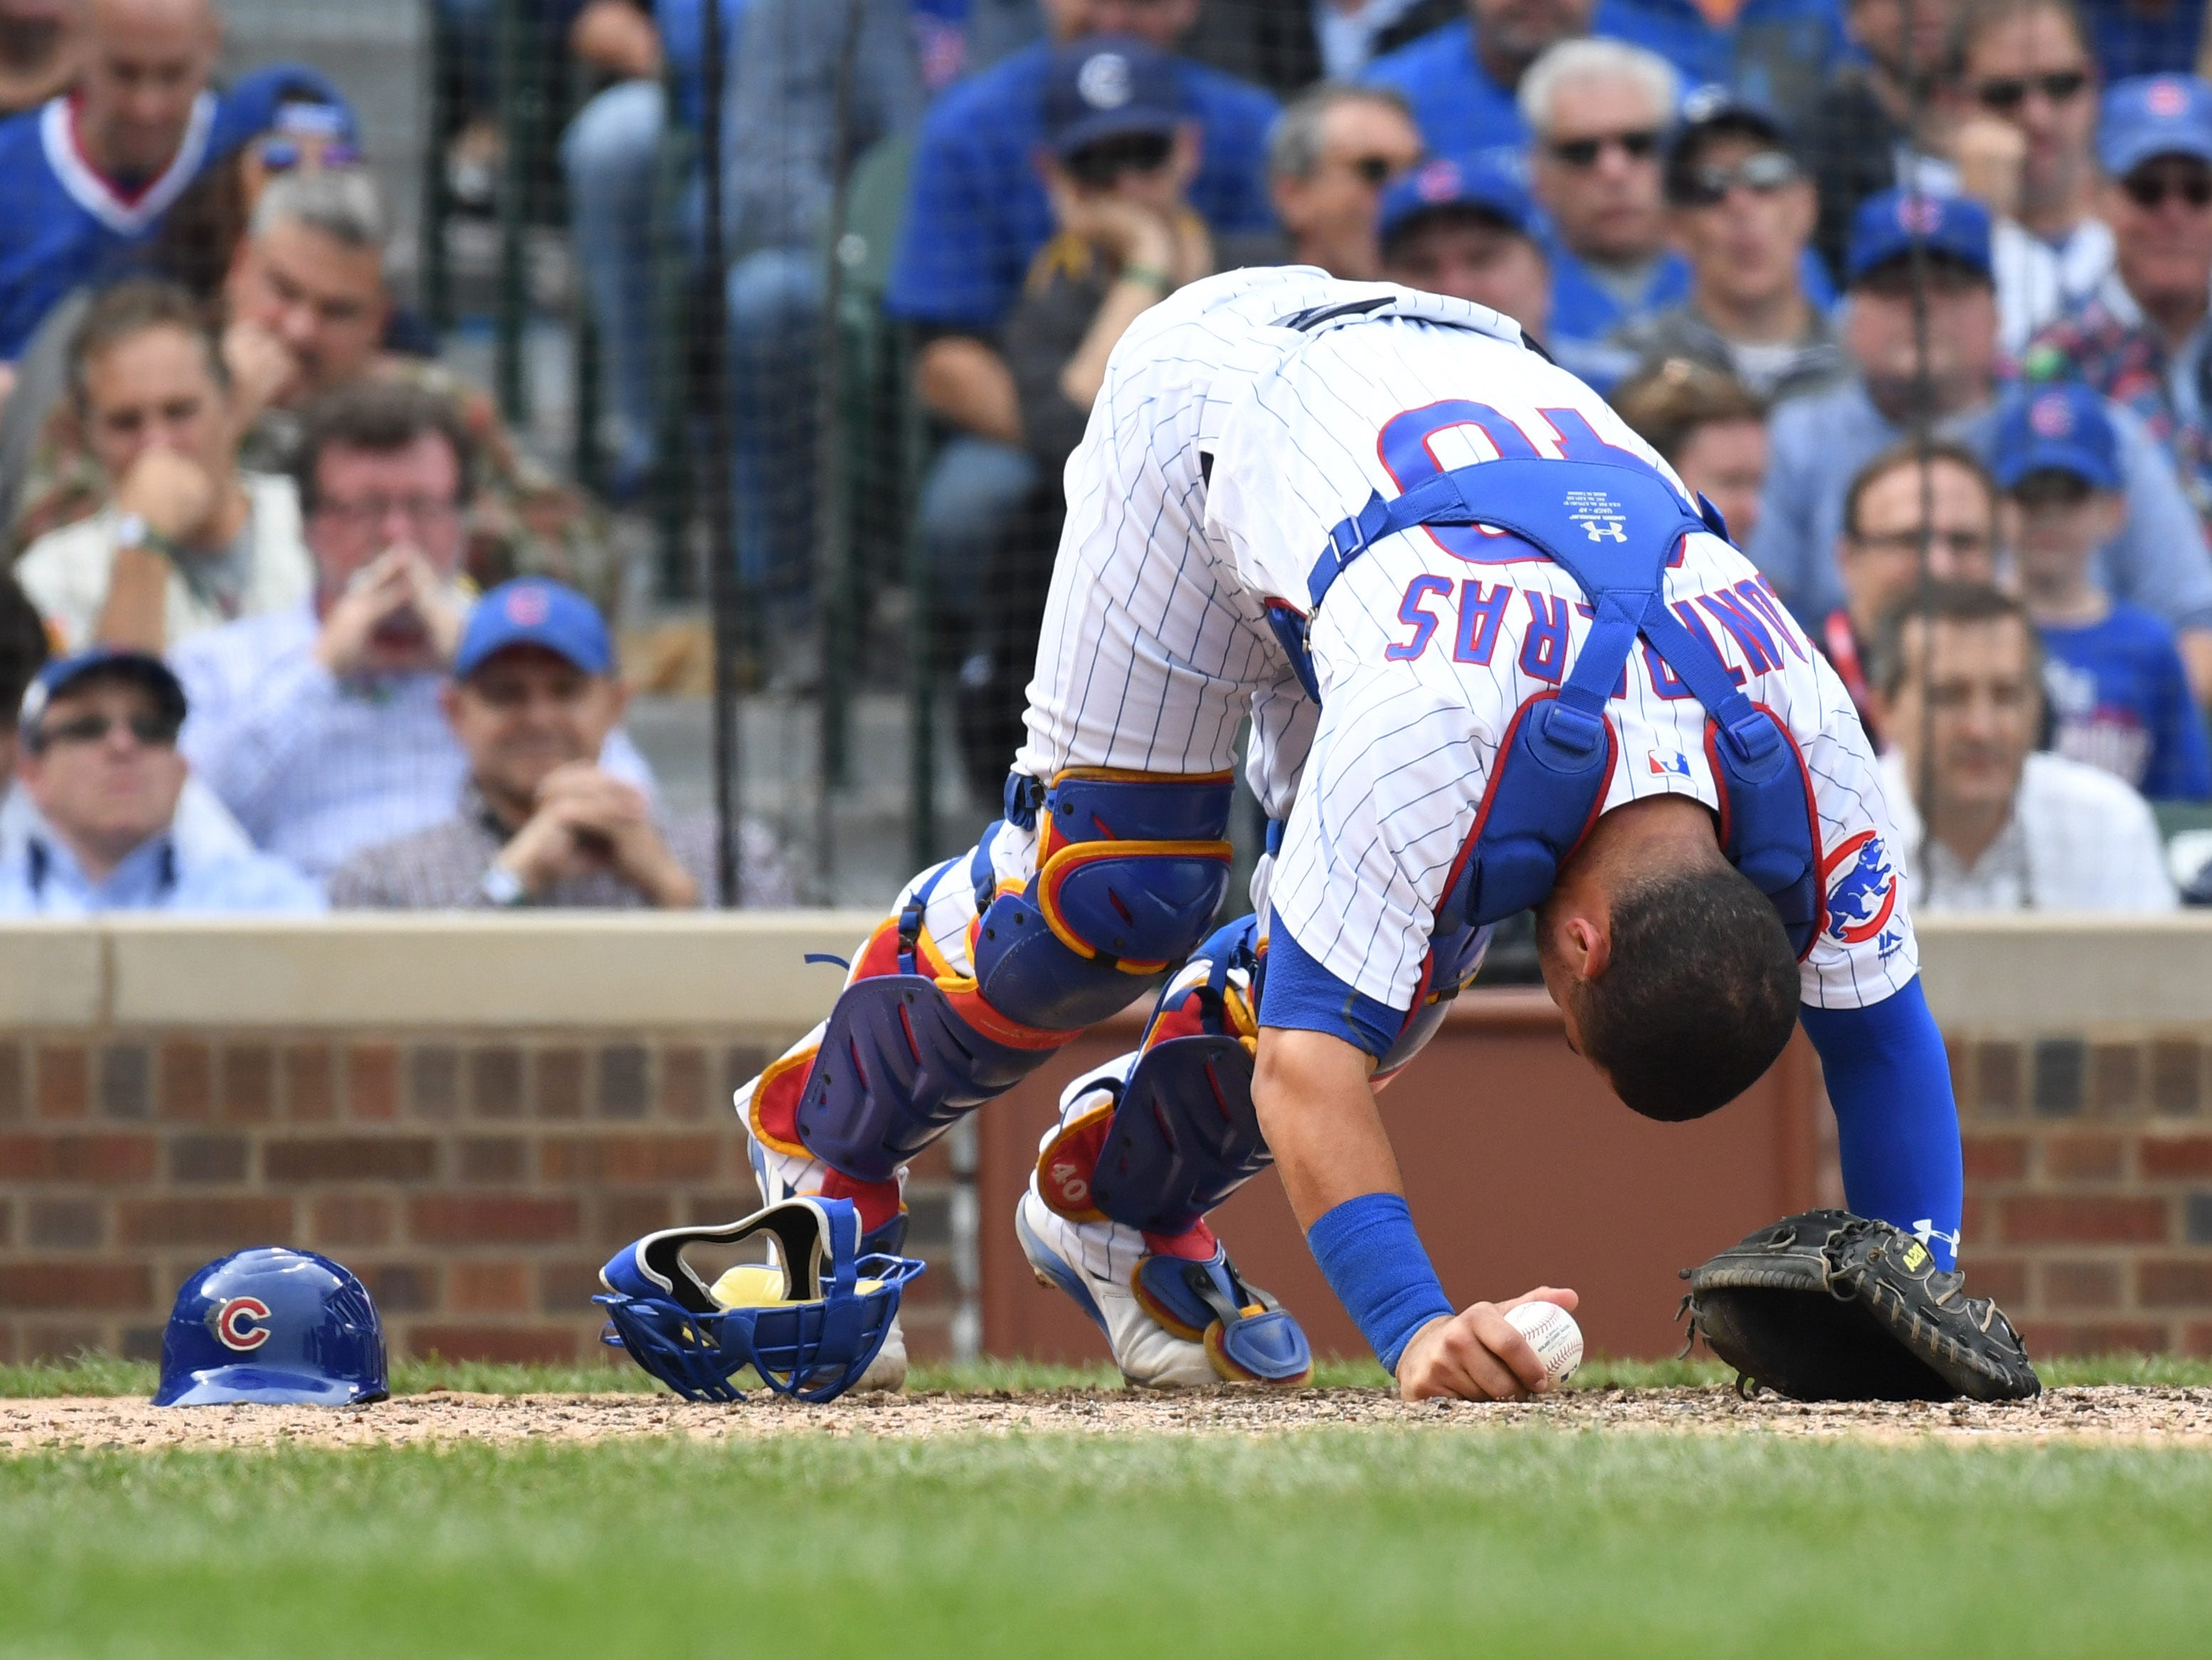 Cubs catcher Willson Contreras reacts after  getting hit by a pitch in the eighth inning.